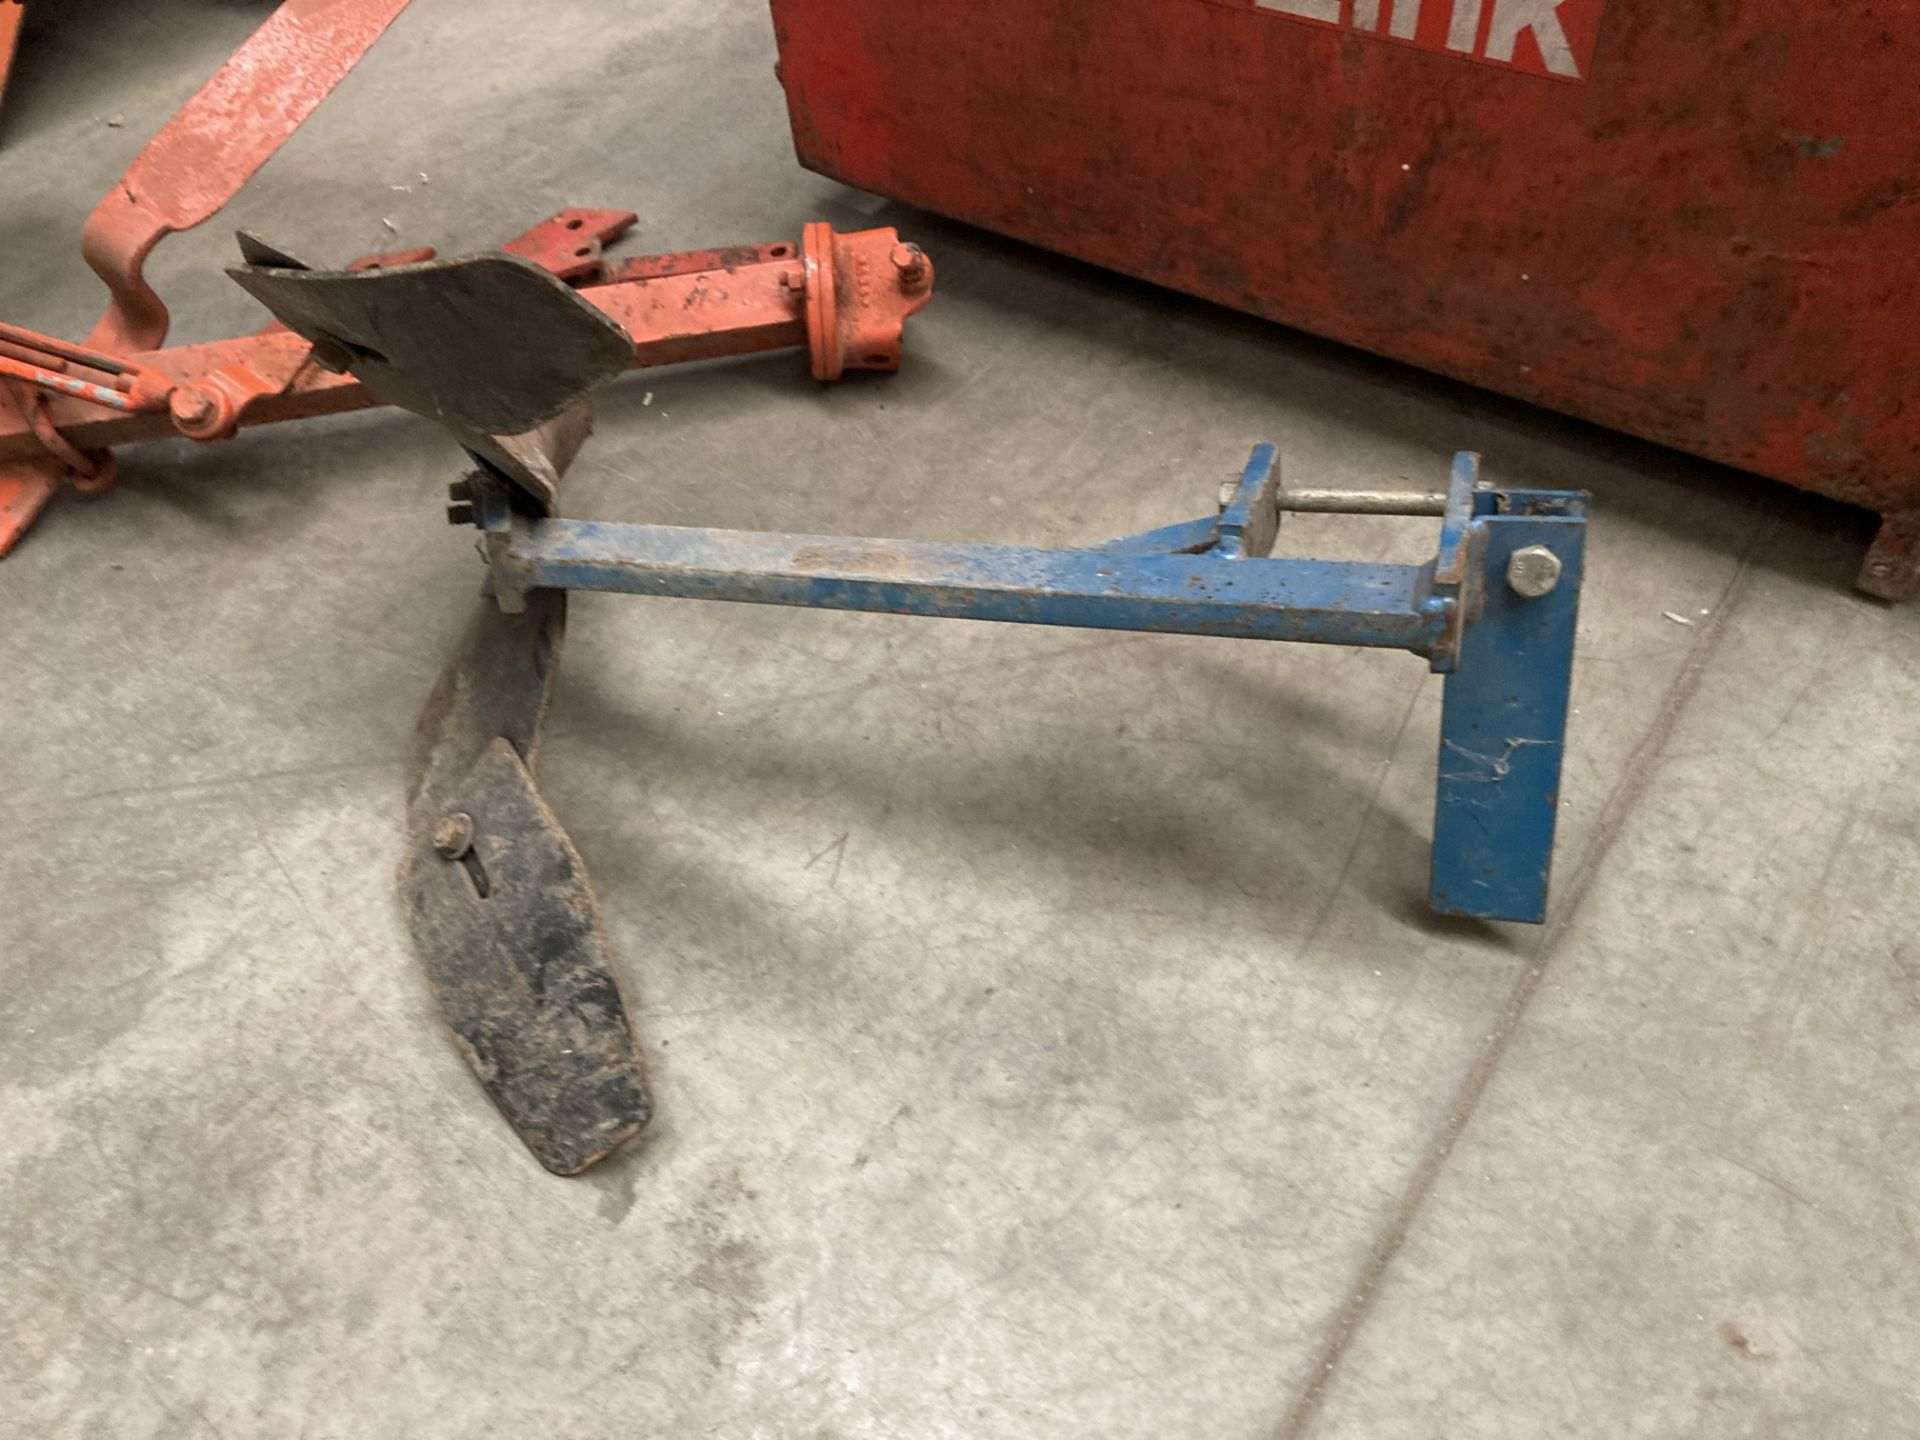 A blue metal frame TWO PLOUGH ATTACHMENT *Please note, - Image 5 of 5